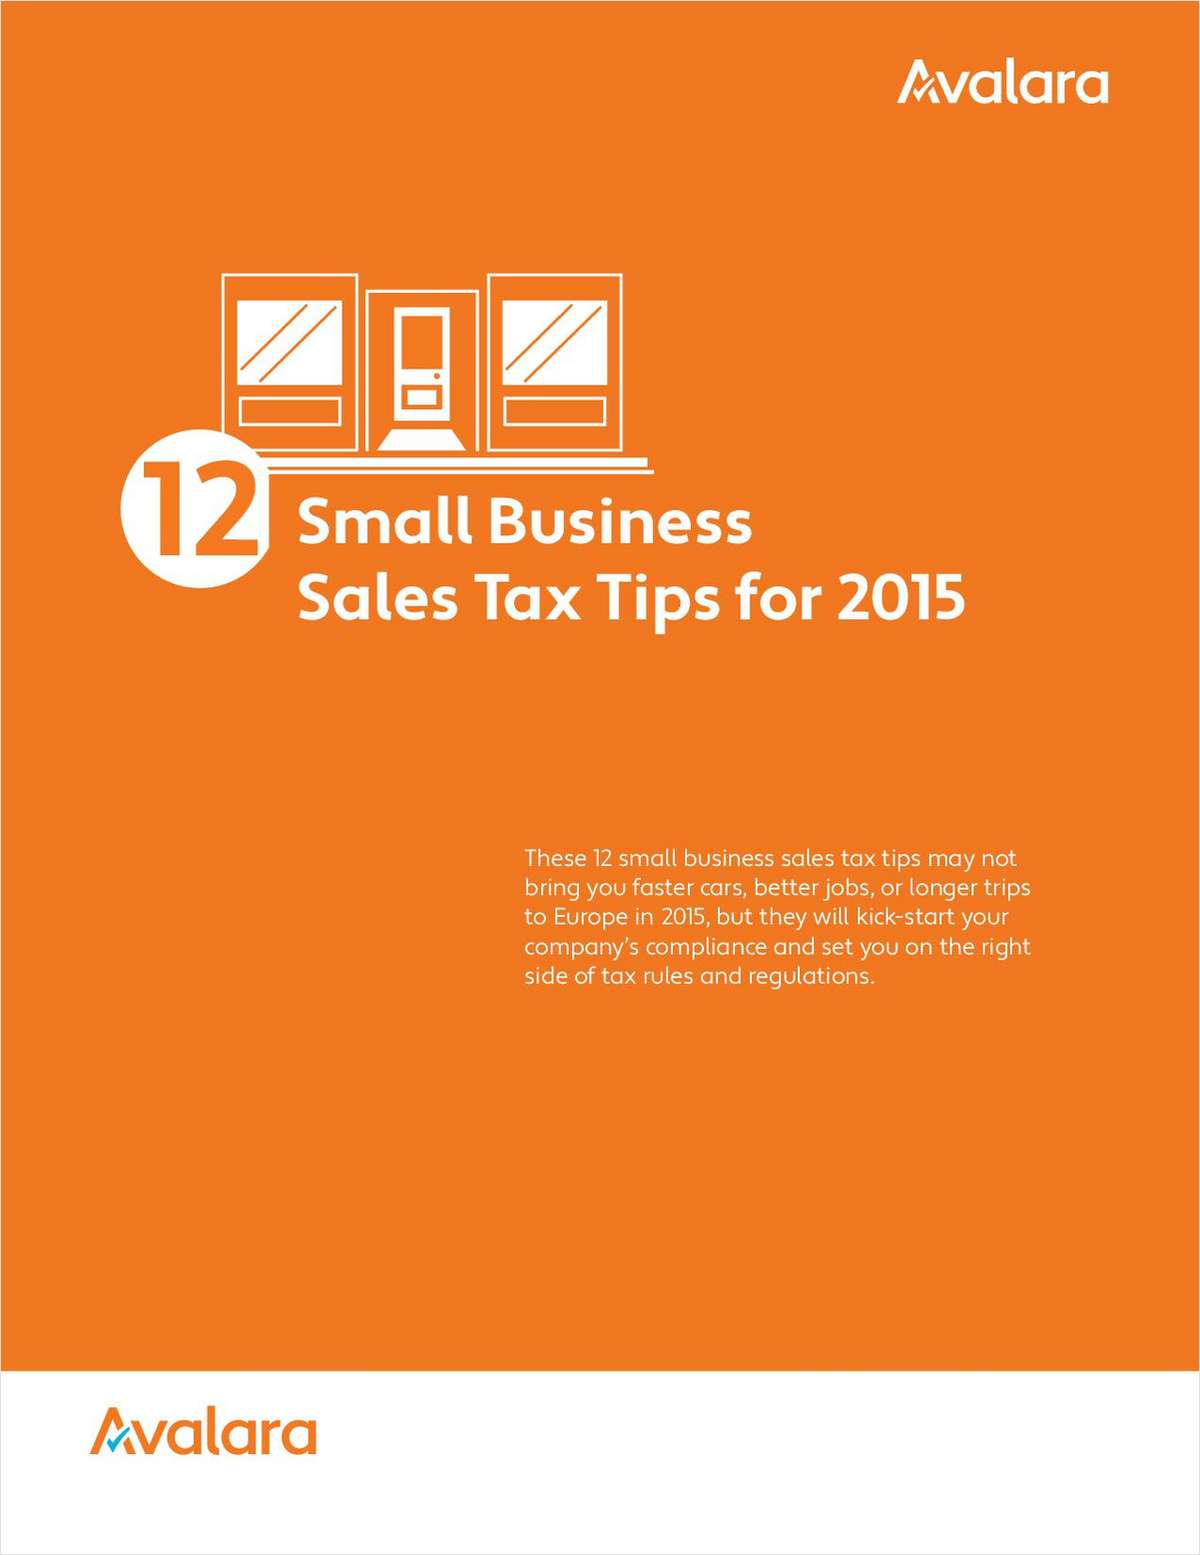 12 Small Business Tax Tips for 2015